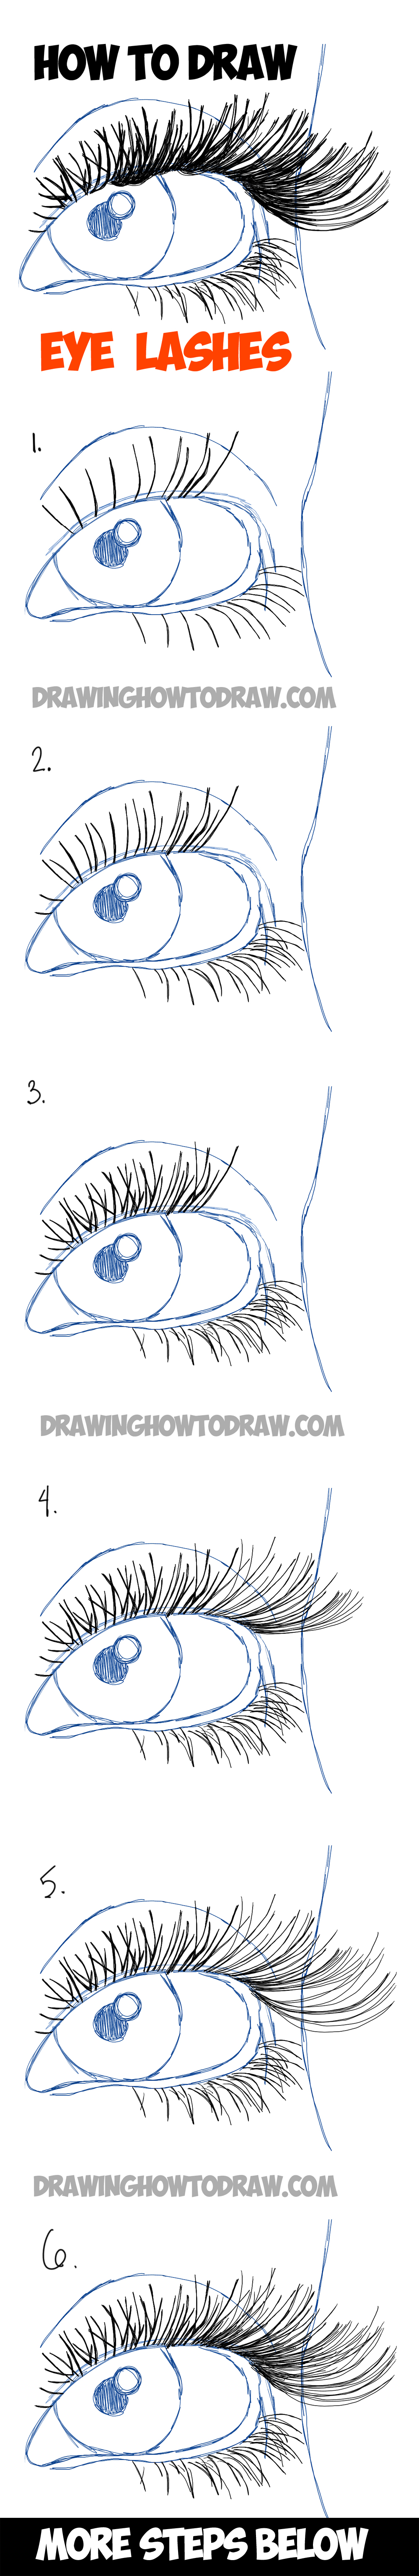 How To Draw Eye Lashes With Step By Step Illustrated Tutorial How